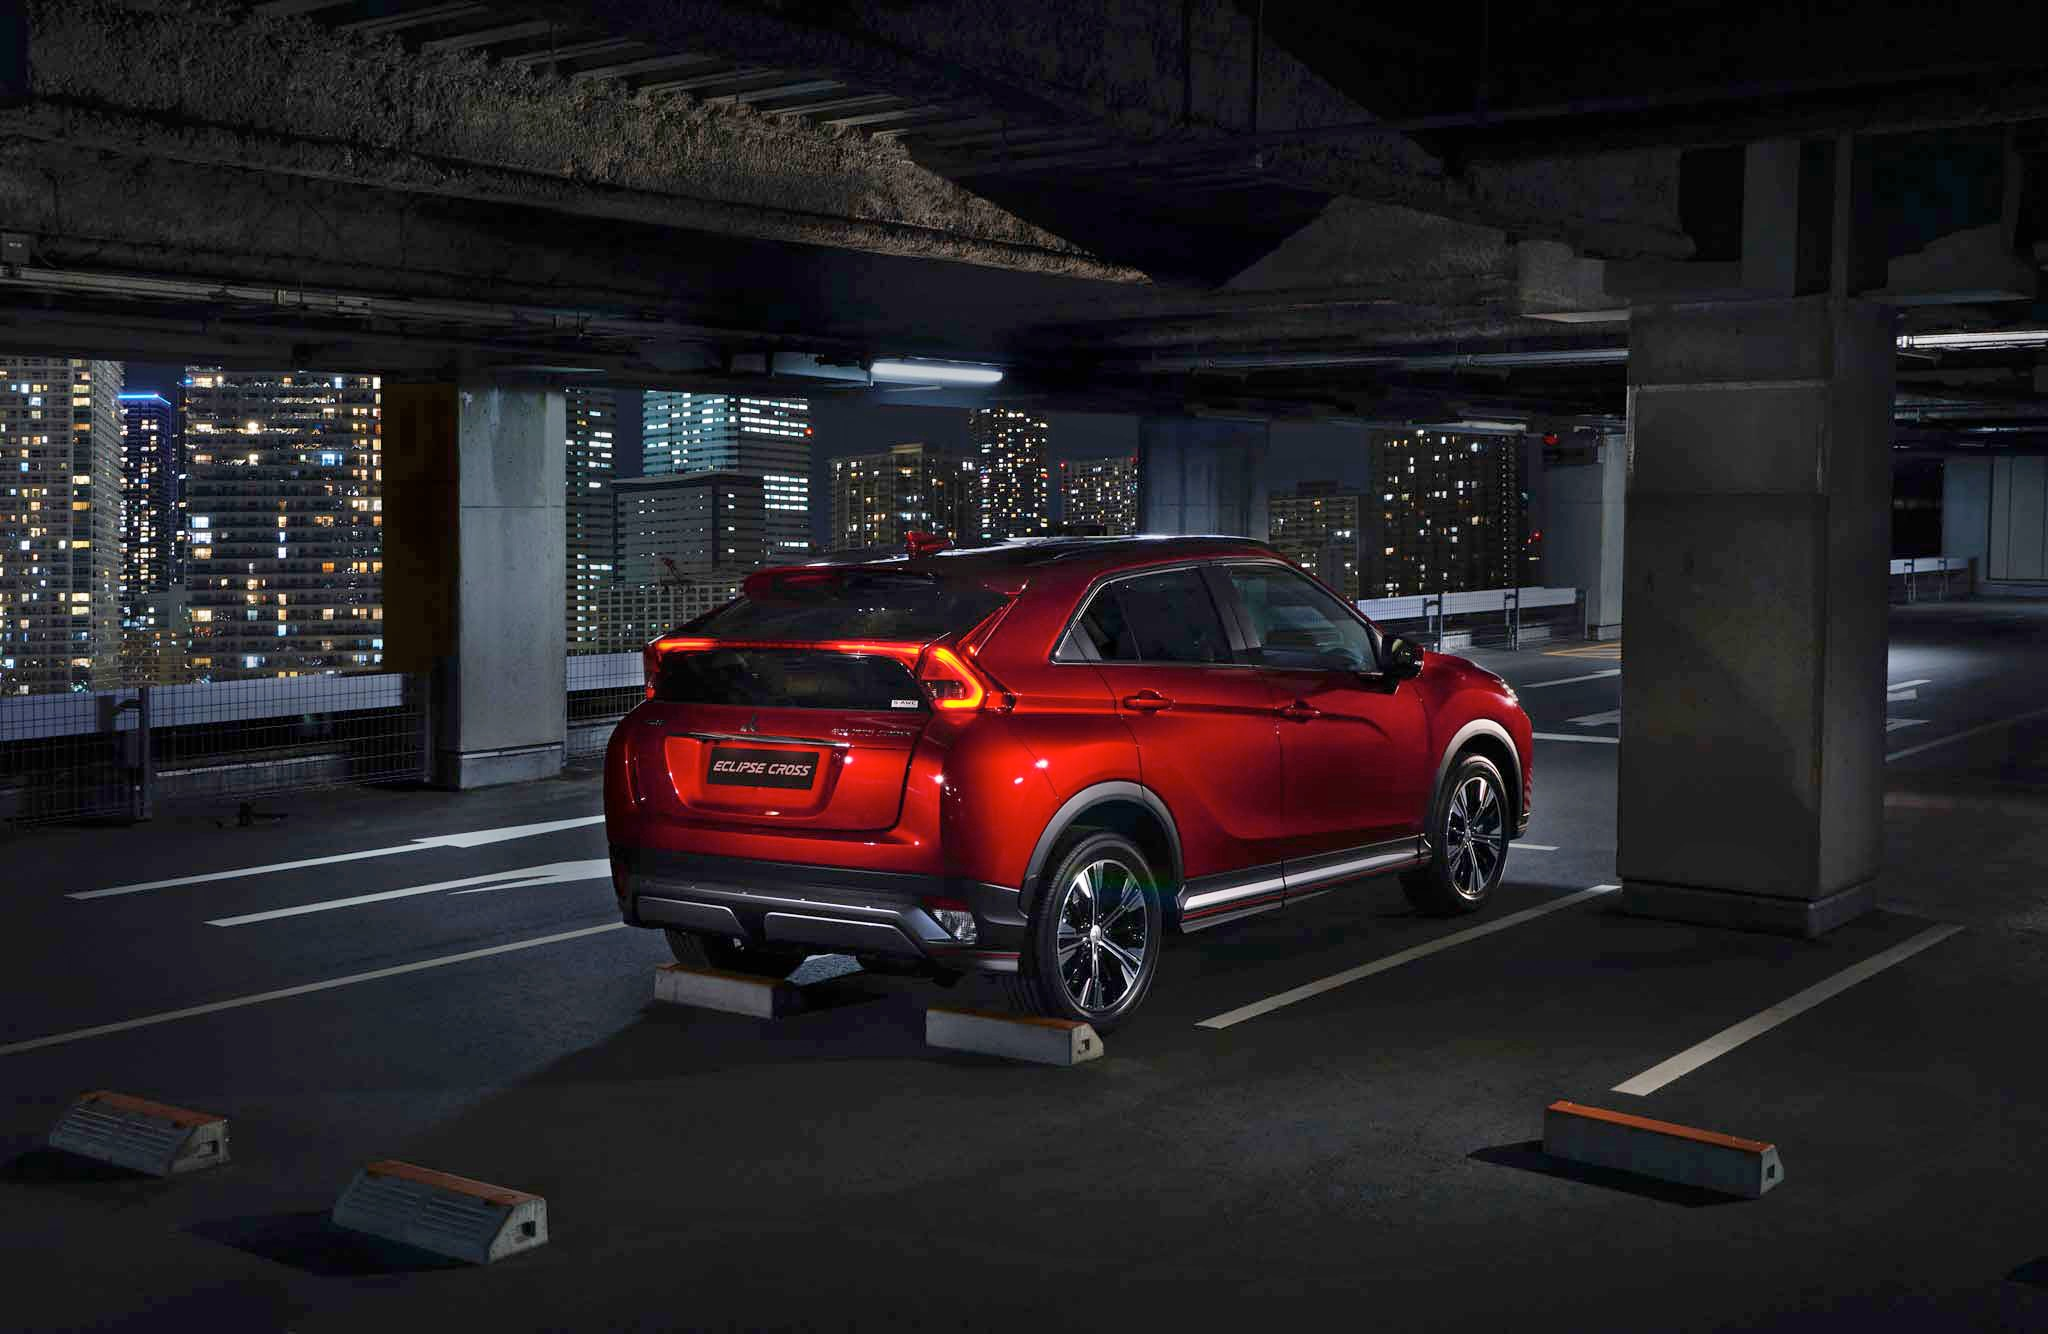 2018 Mitsubishi Eclipse Cross Rear Three Quarter Parked 1